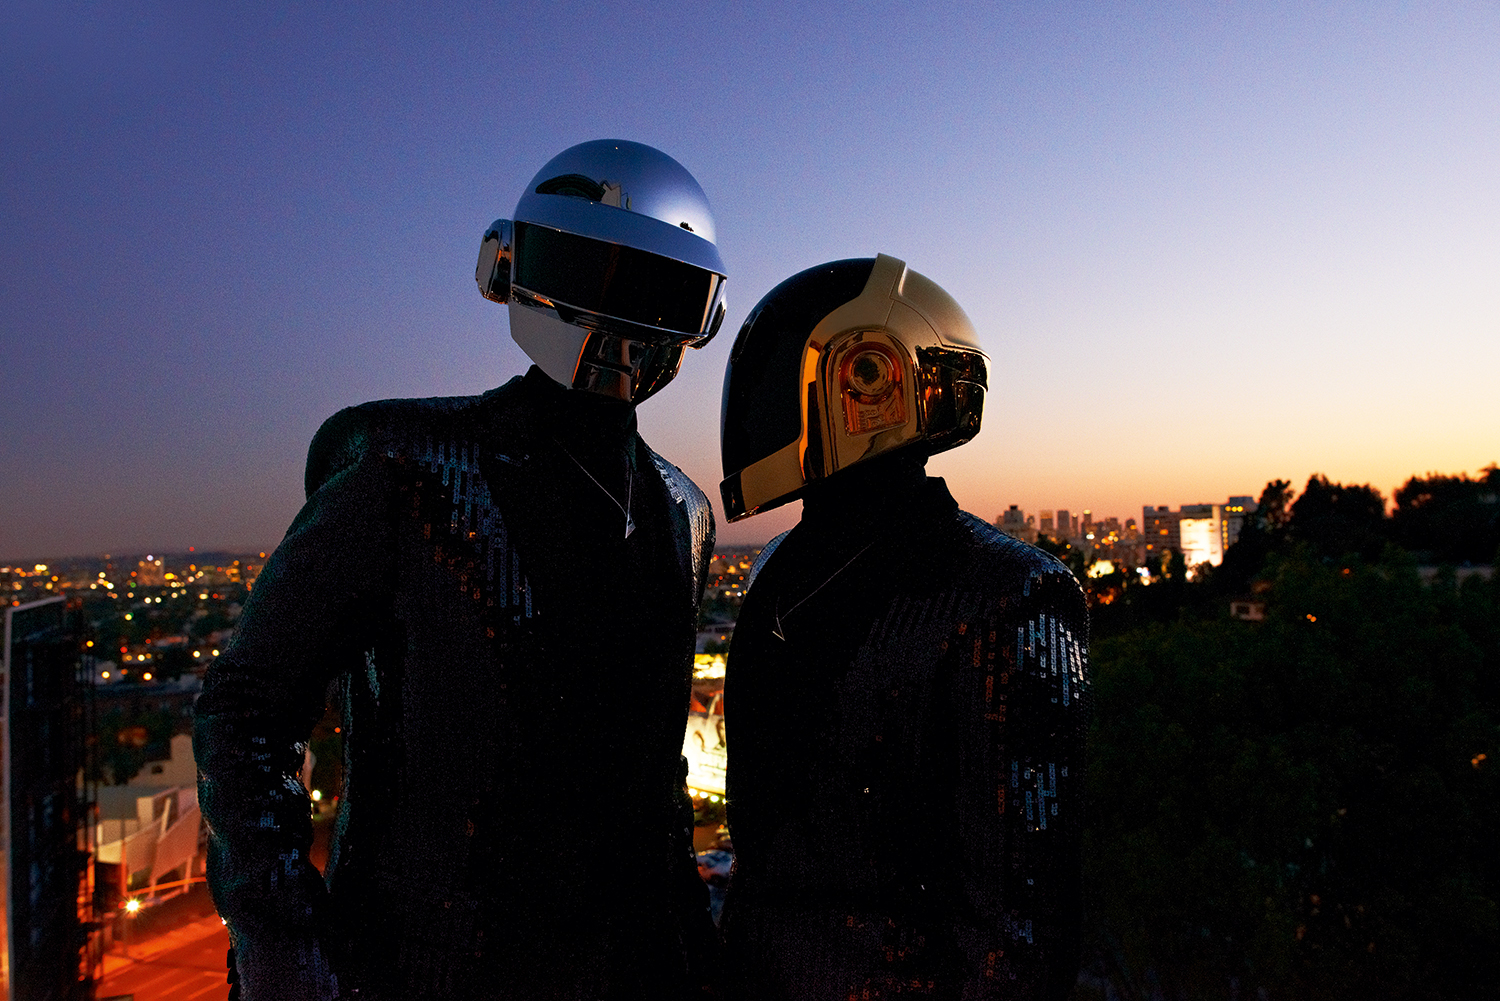 Leaked setlist alludes to possible Daft Punk guest appearance at The Weeknd's Super Bowl performance